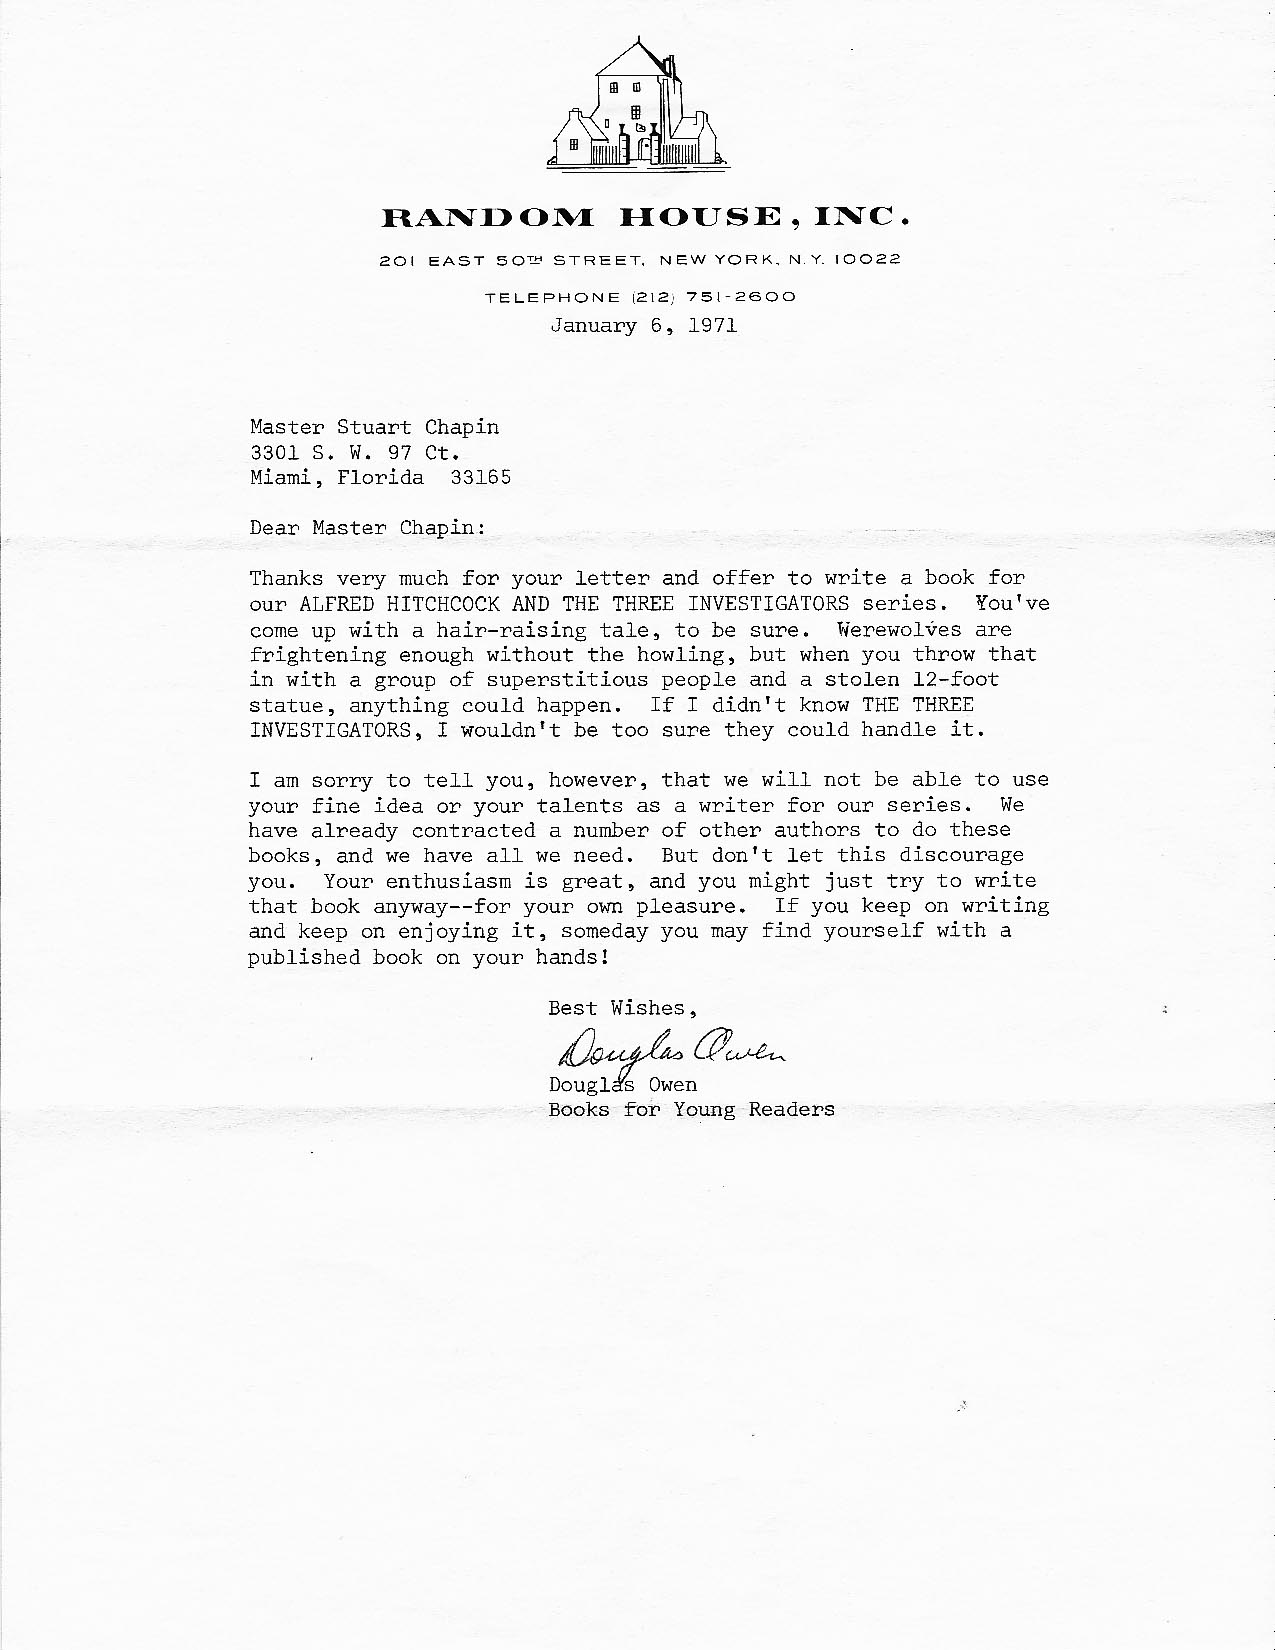 vintage letters three investigators dear master chapin thanks very much for your letter and offer